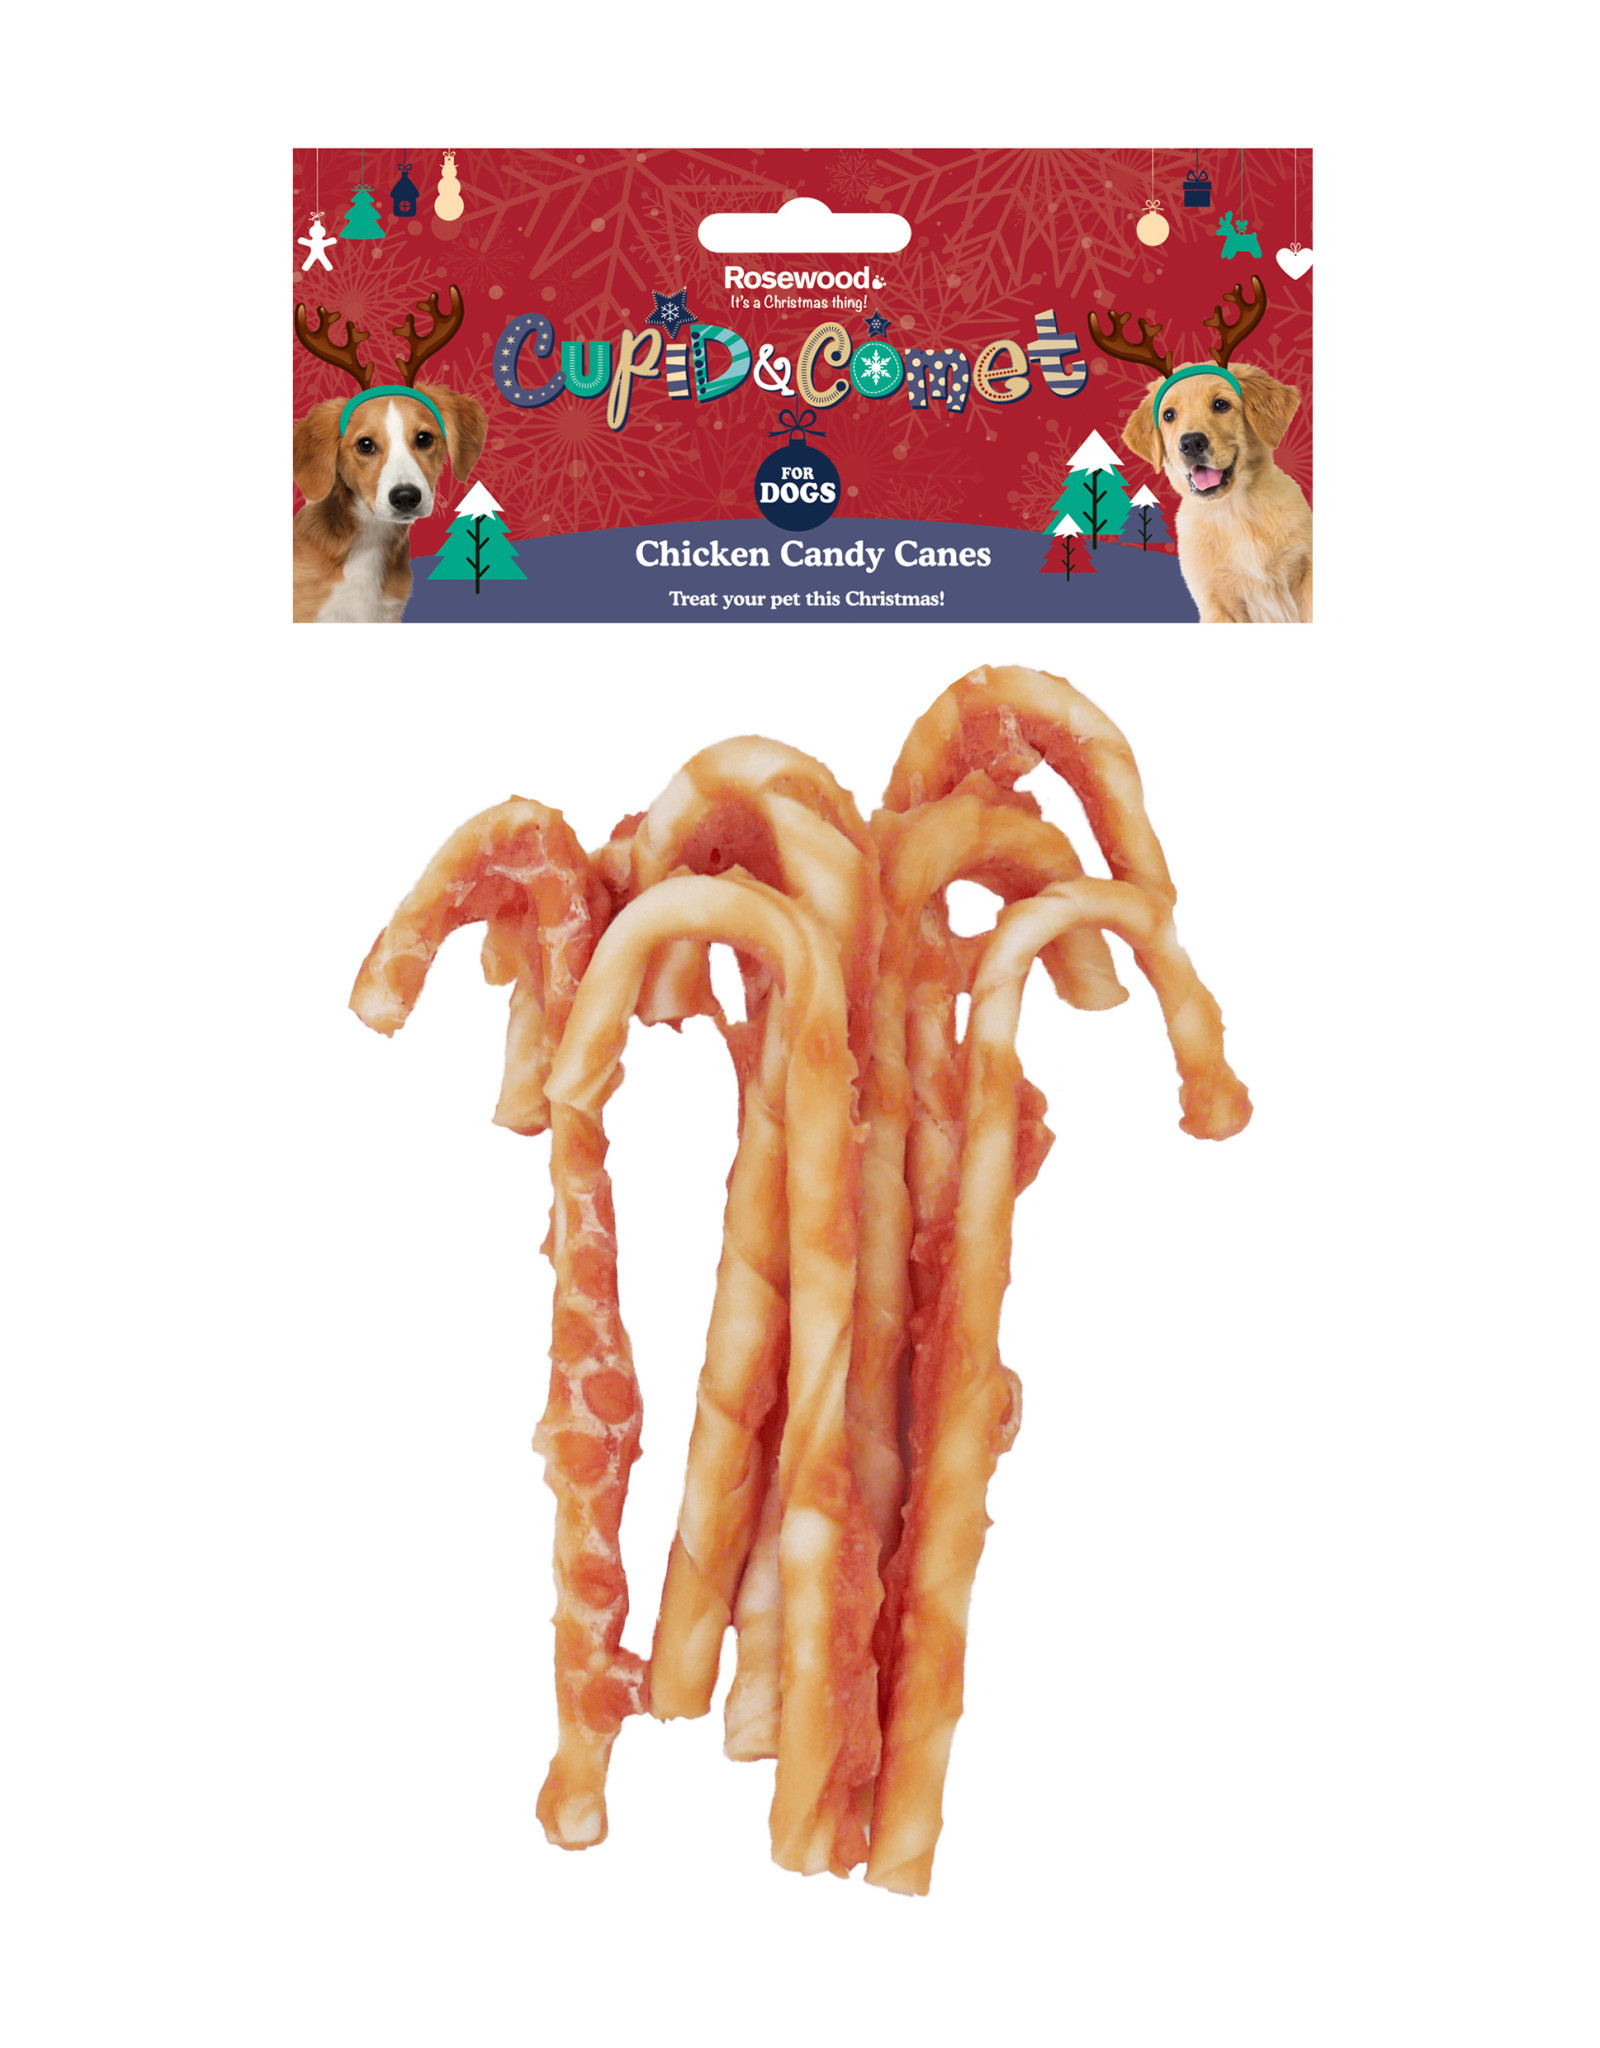 Rosewood Christmas Chicken Candy Canes Dog Treats, 90g